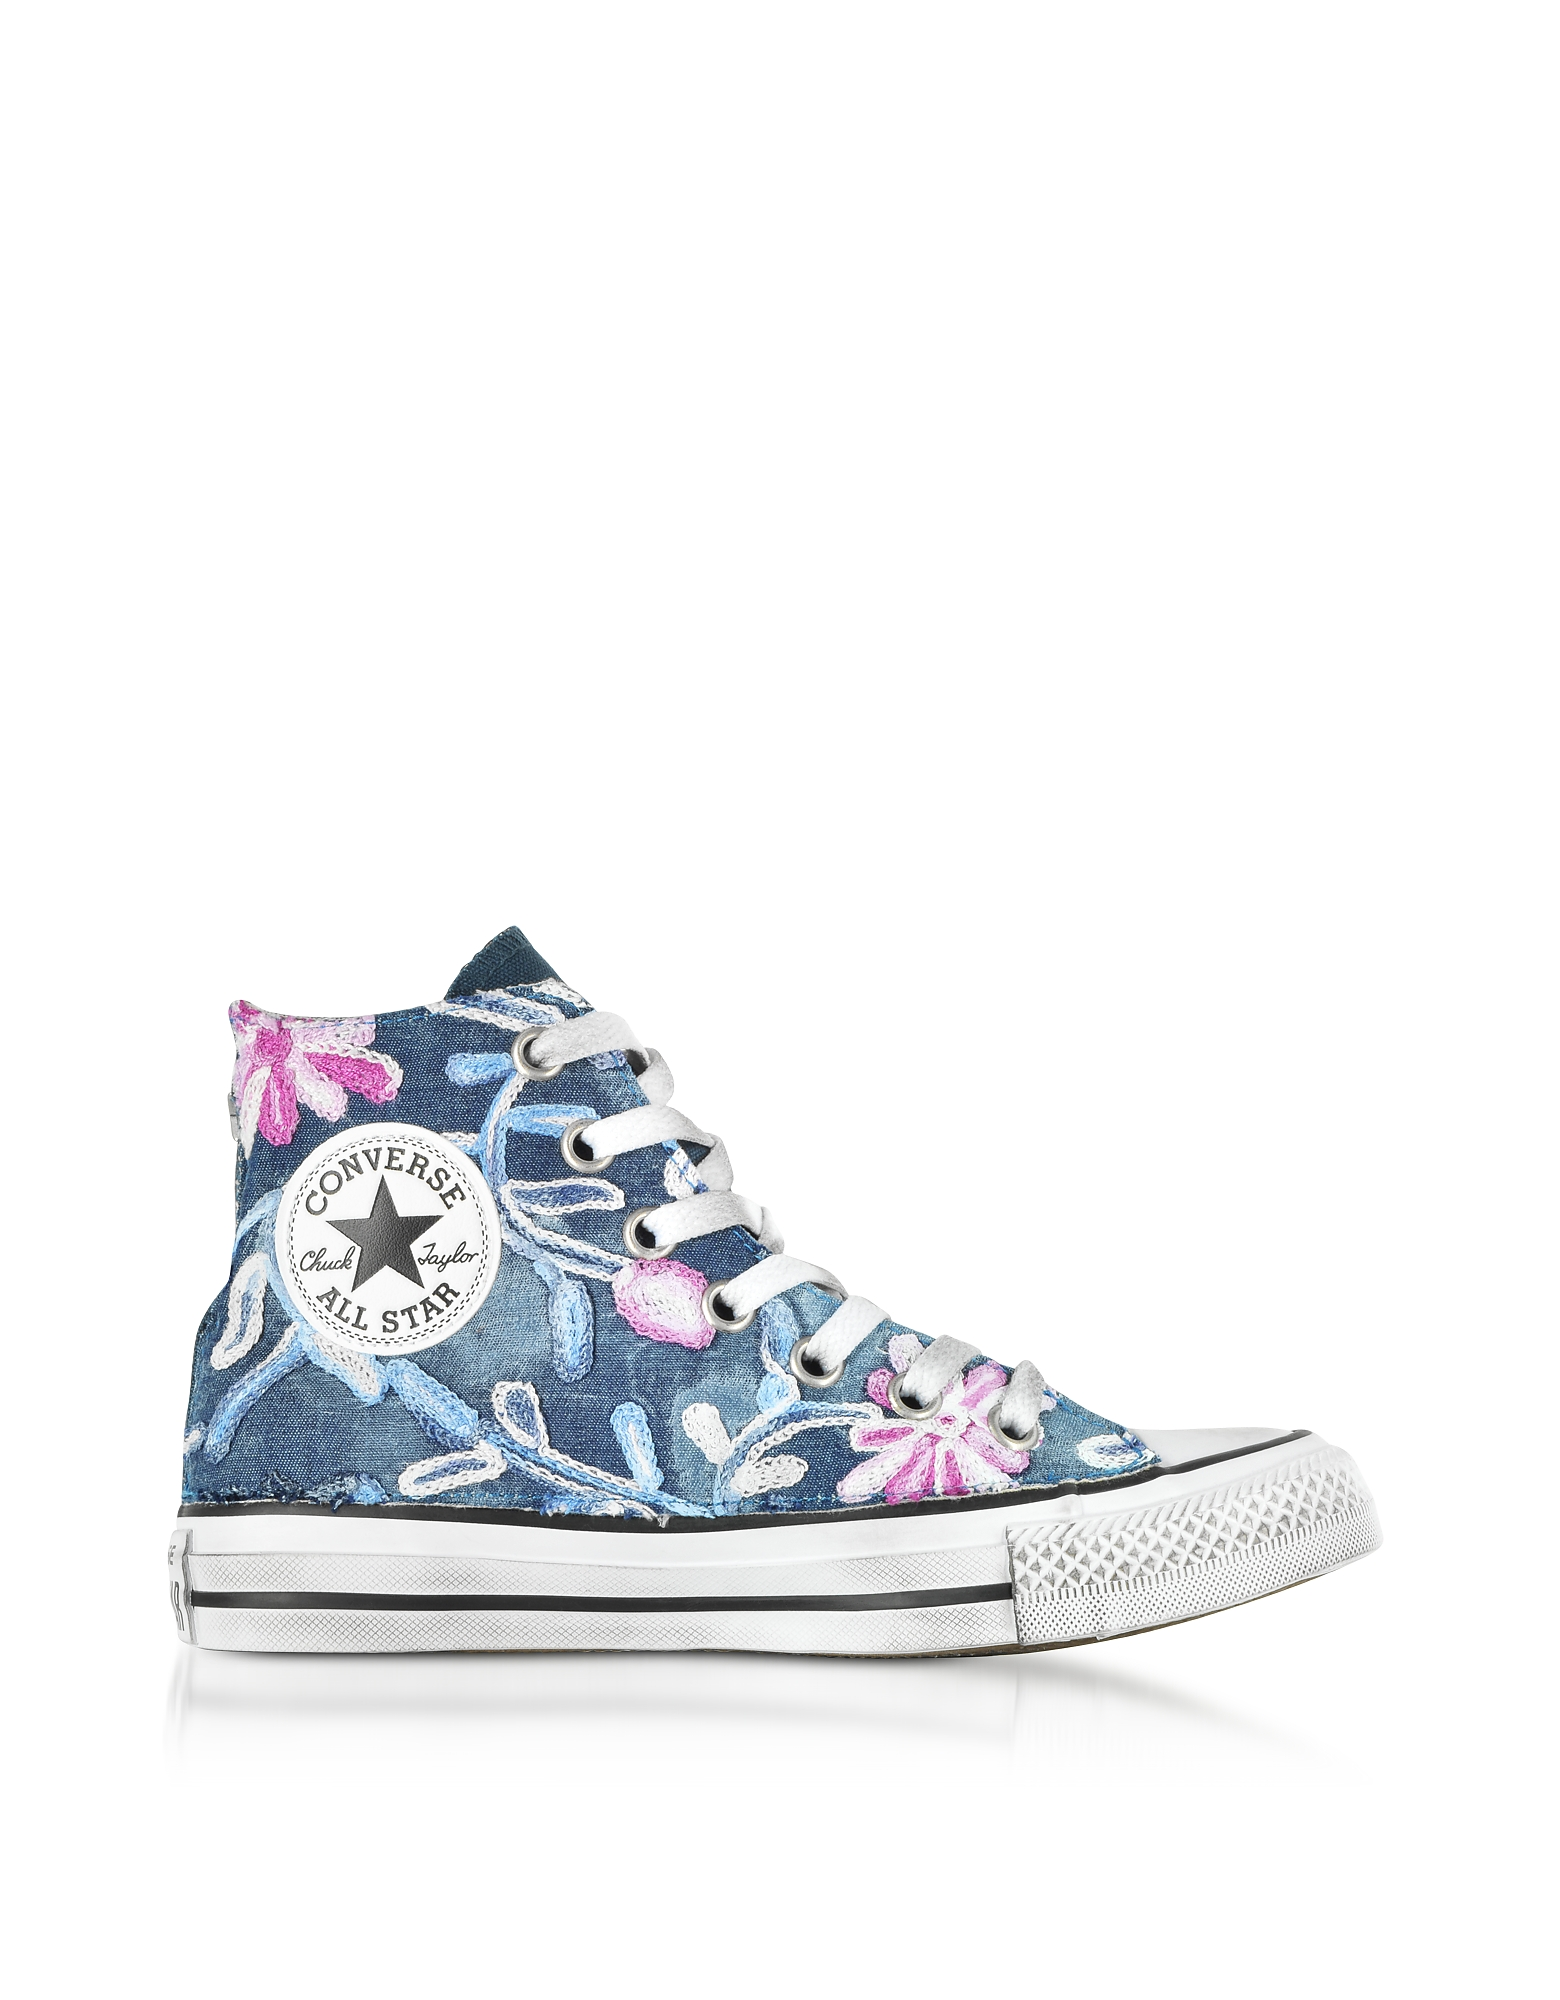 Converse Limited Edition Designer Shoes, Chuck Taylor All Star High Vintage Denim Flowers Sneakers